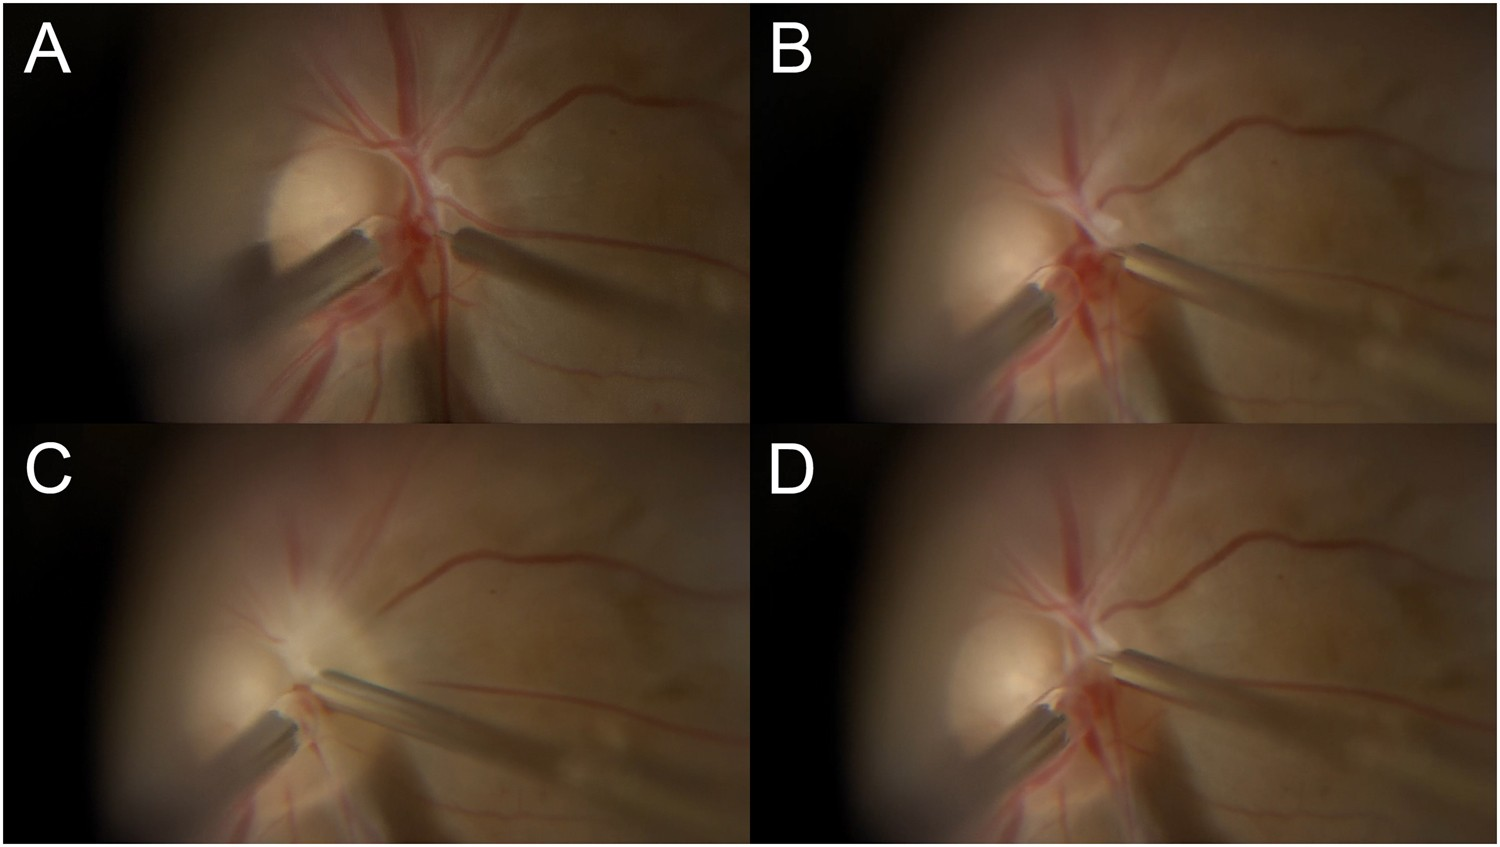 Intra-retinal Arterial Cannulation using a Microneedle for